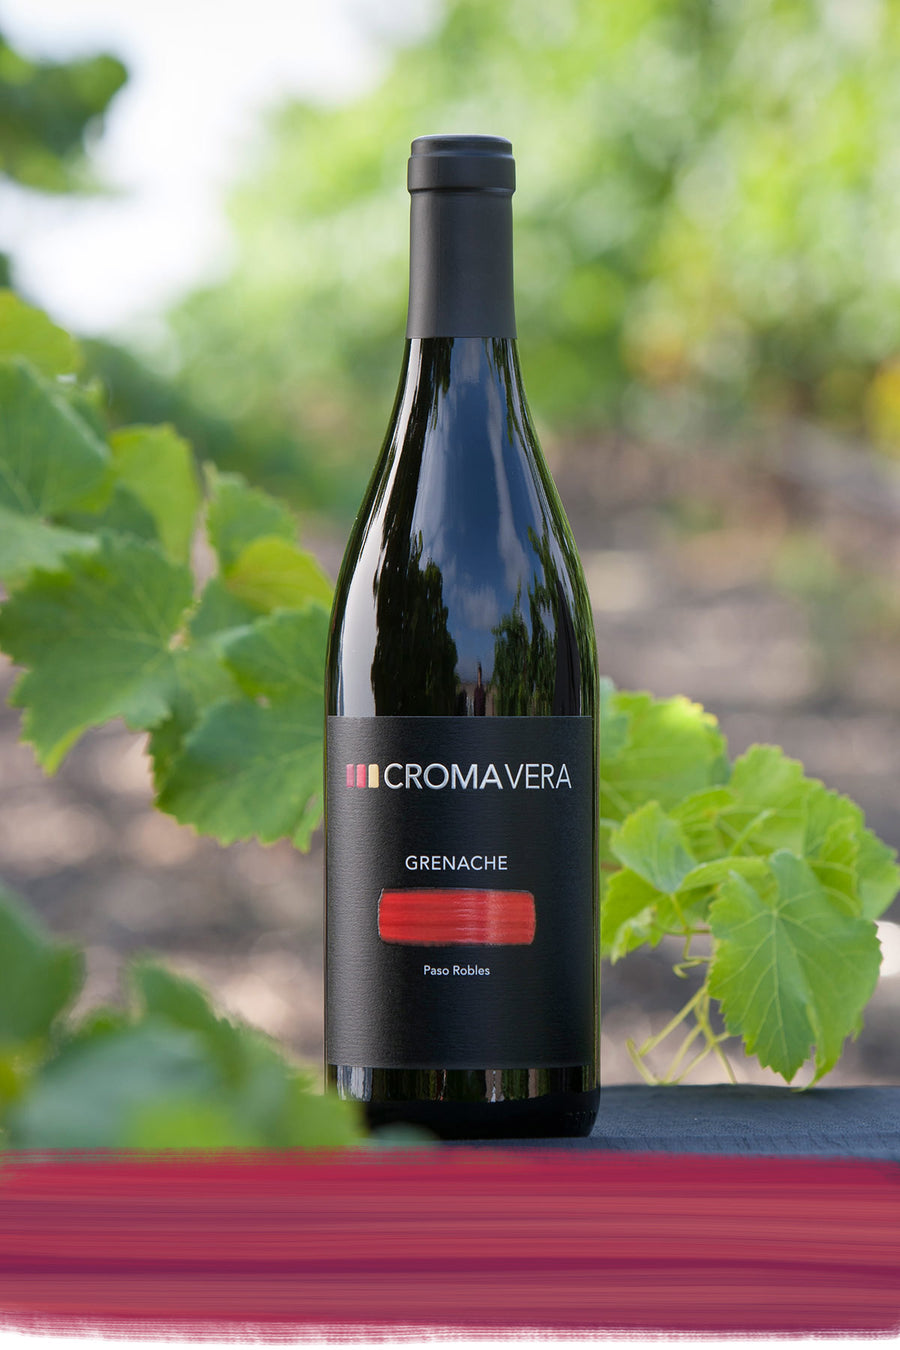 Grenache from Paso Robles